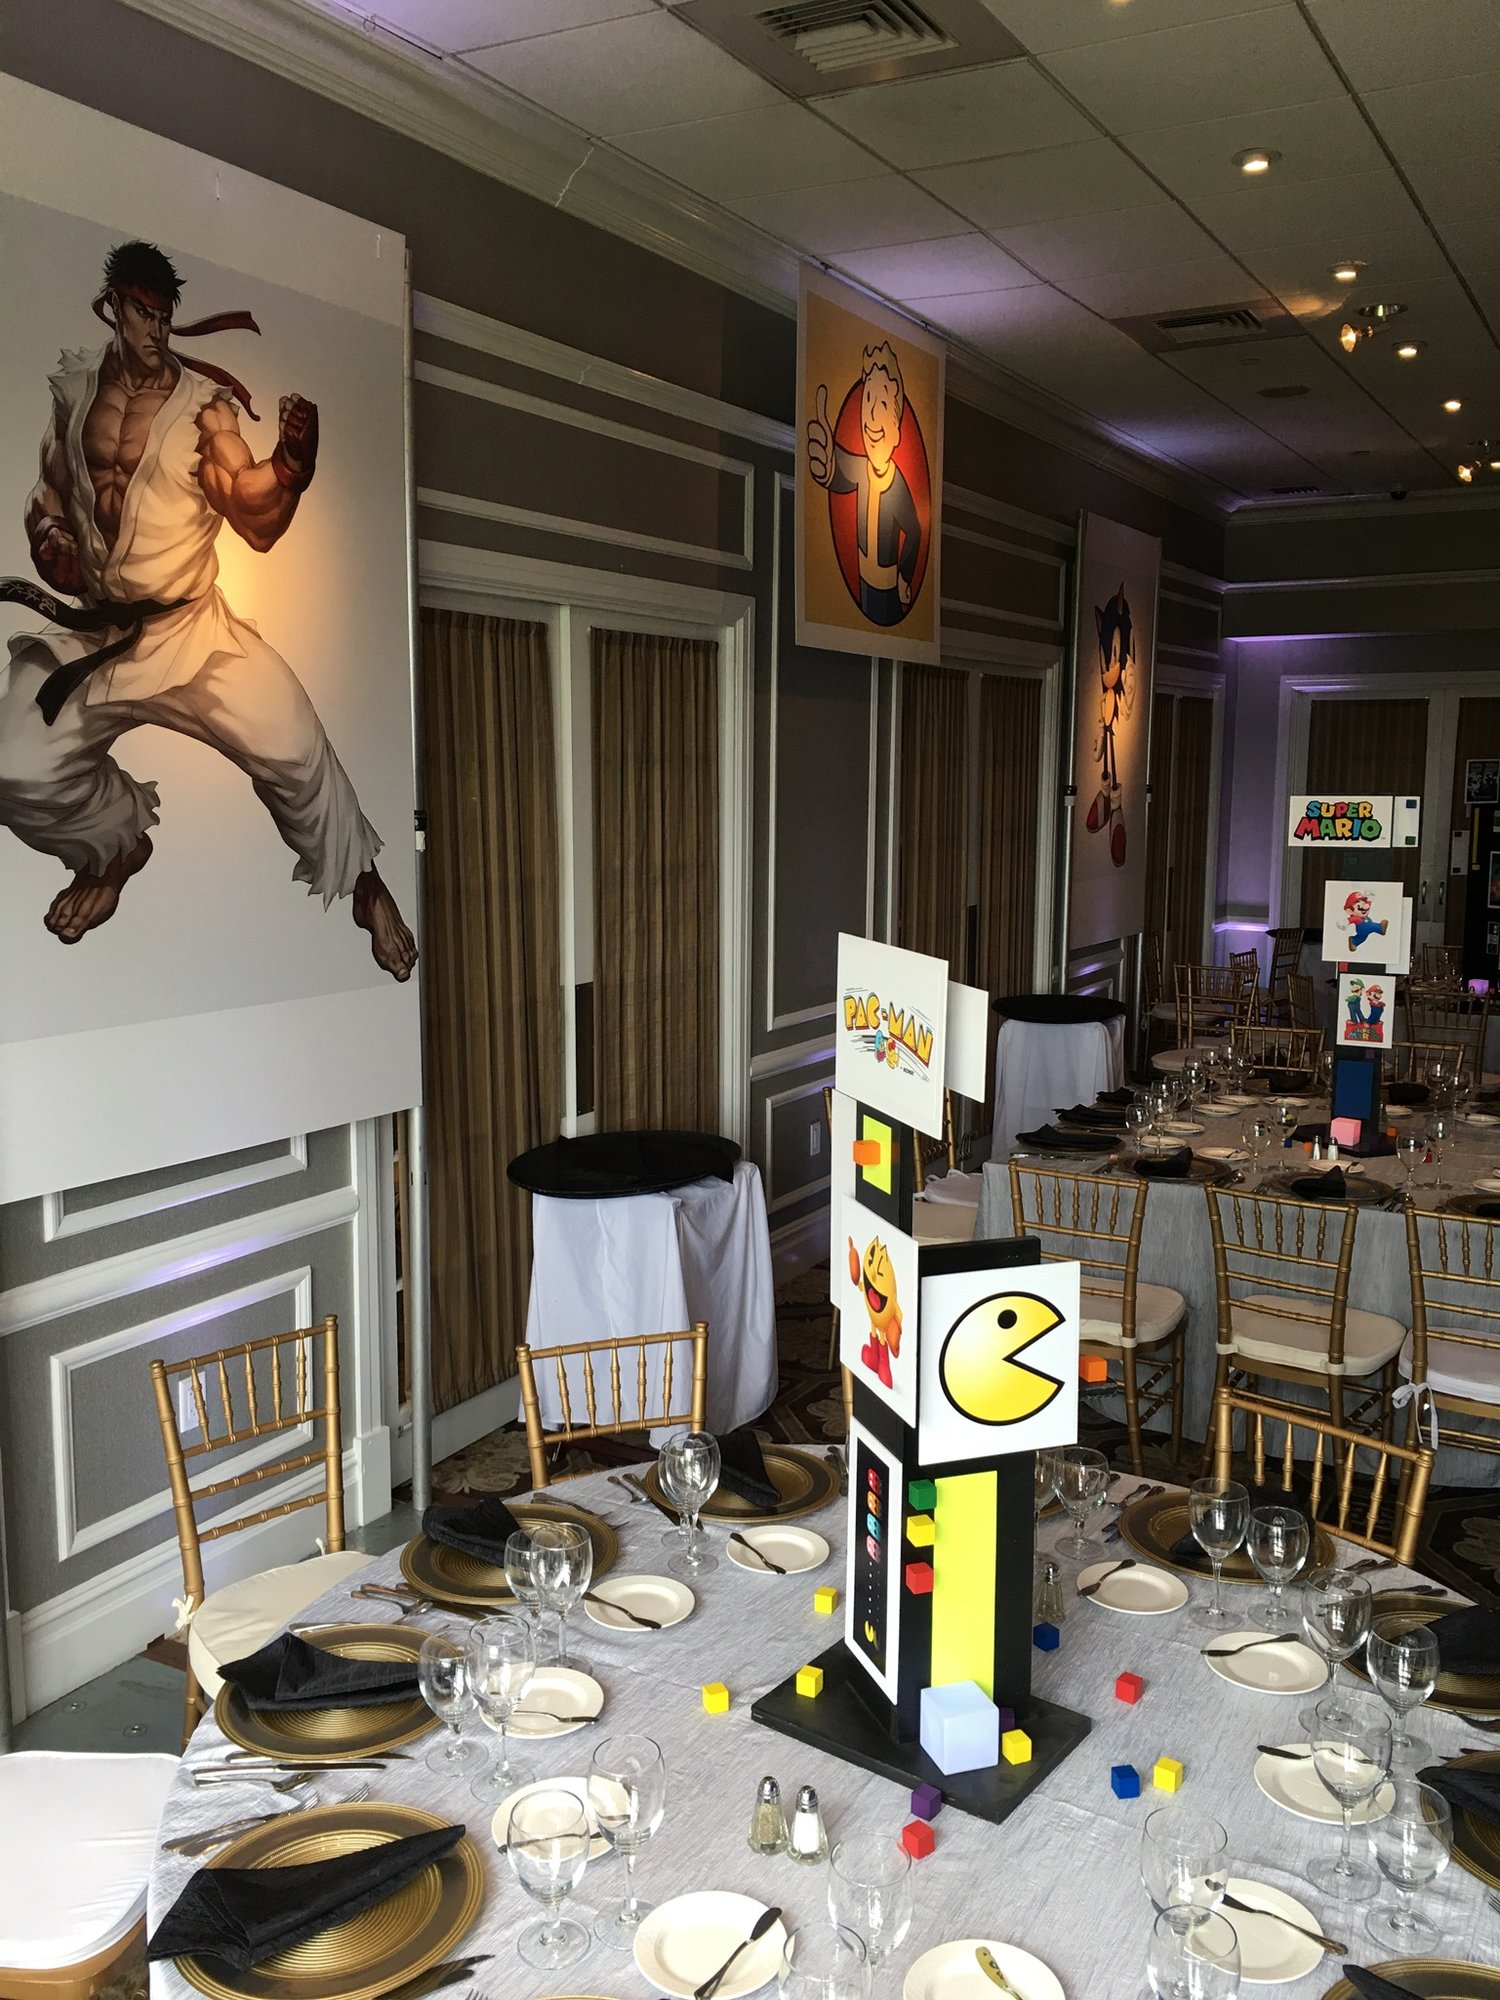 NJ+centerpiece+rental+bat+mitzvah+bat+mitzvahs+rentals+decor+eggsotic+events.jpg